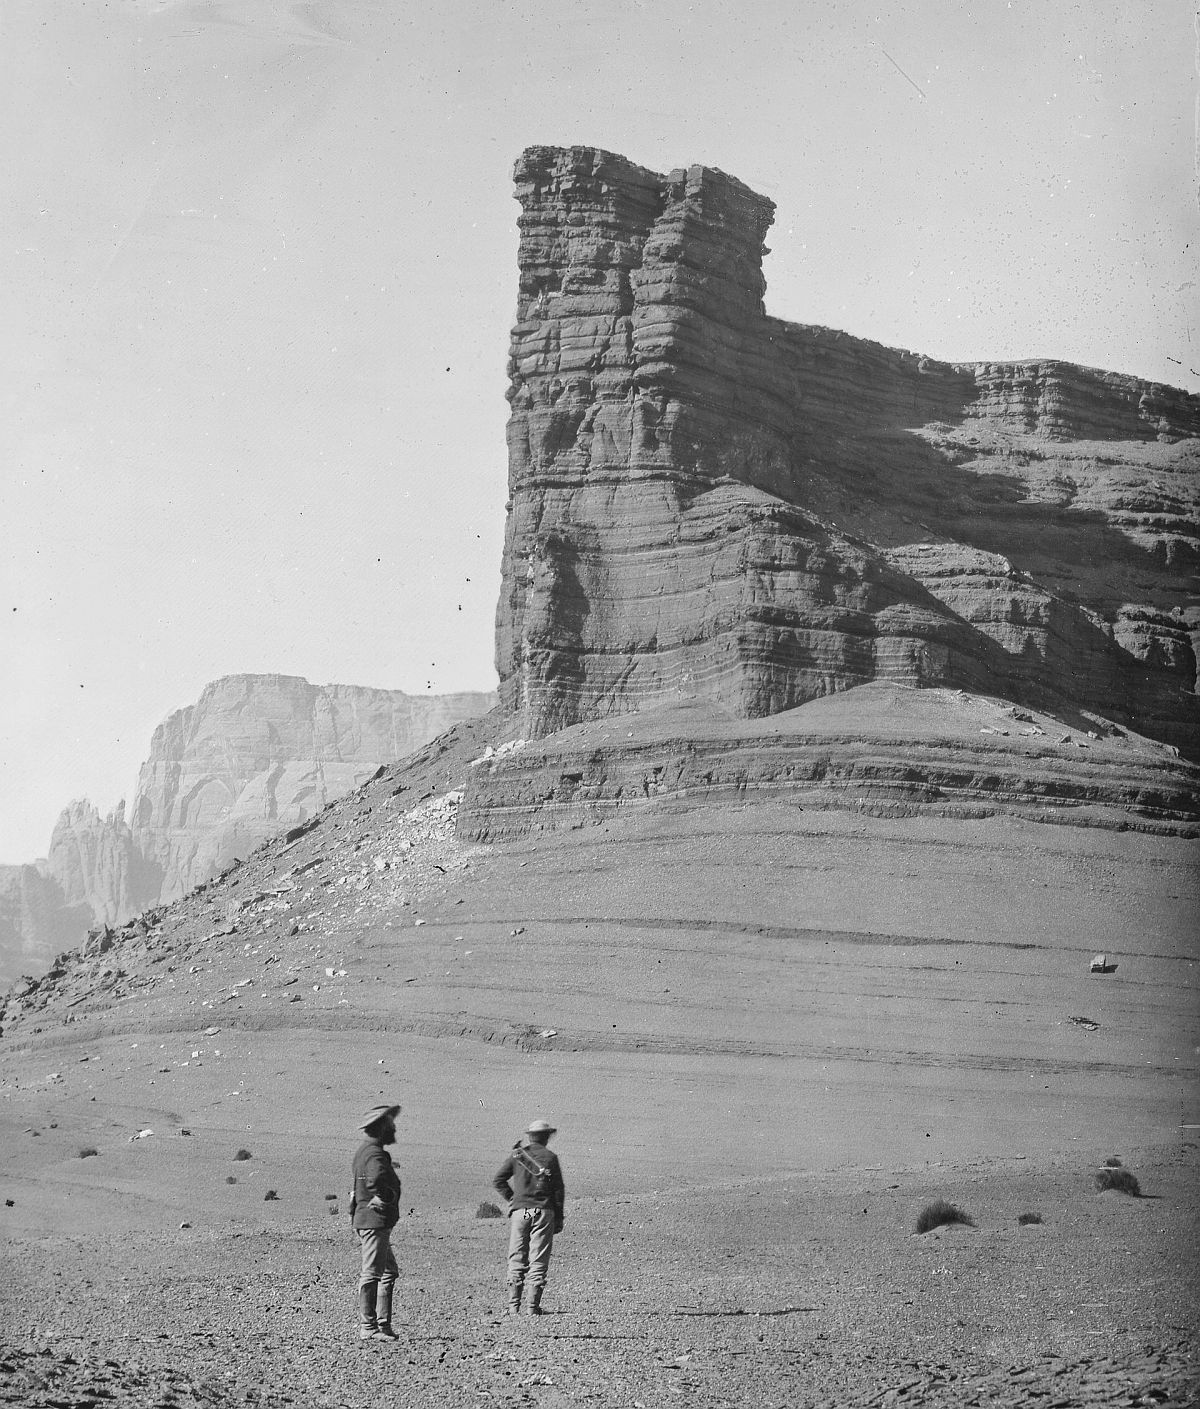 Chocolate Butte near mouth of the Paria River, Arizona